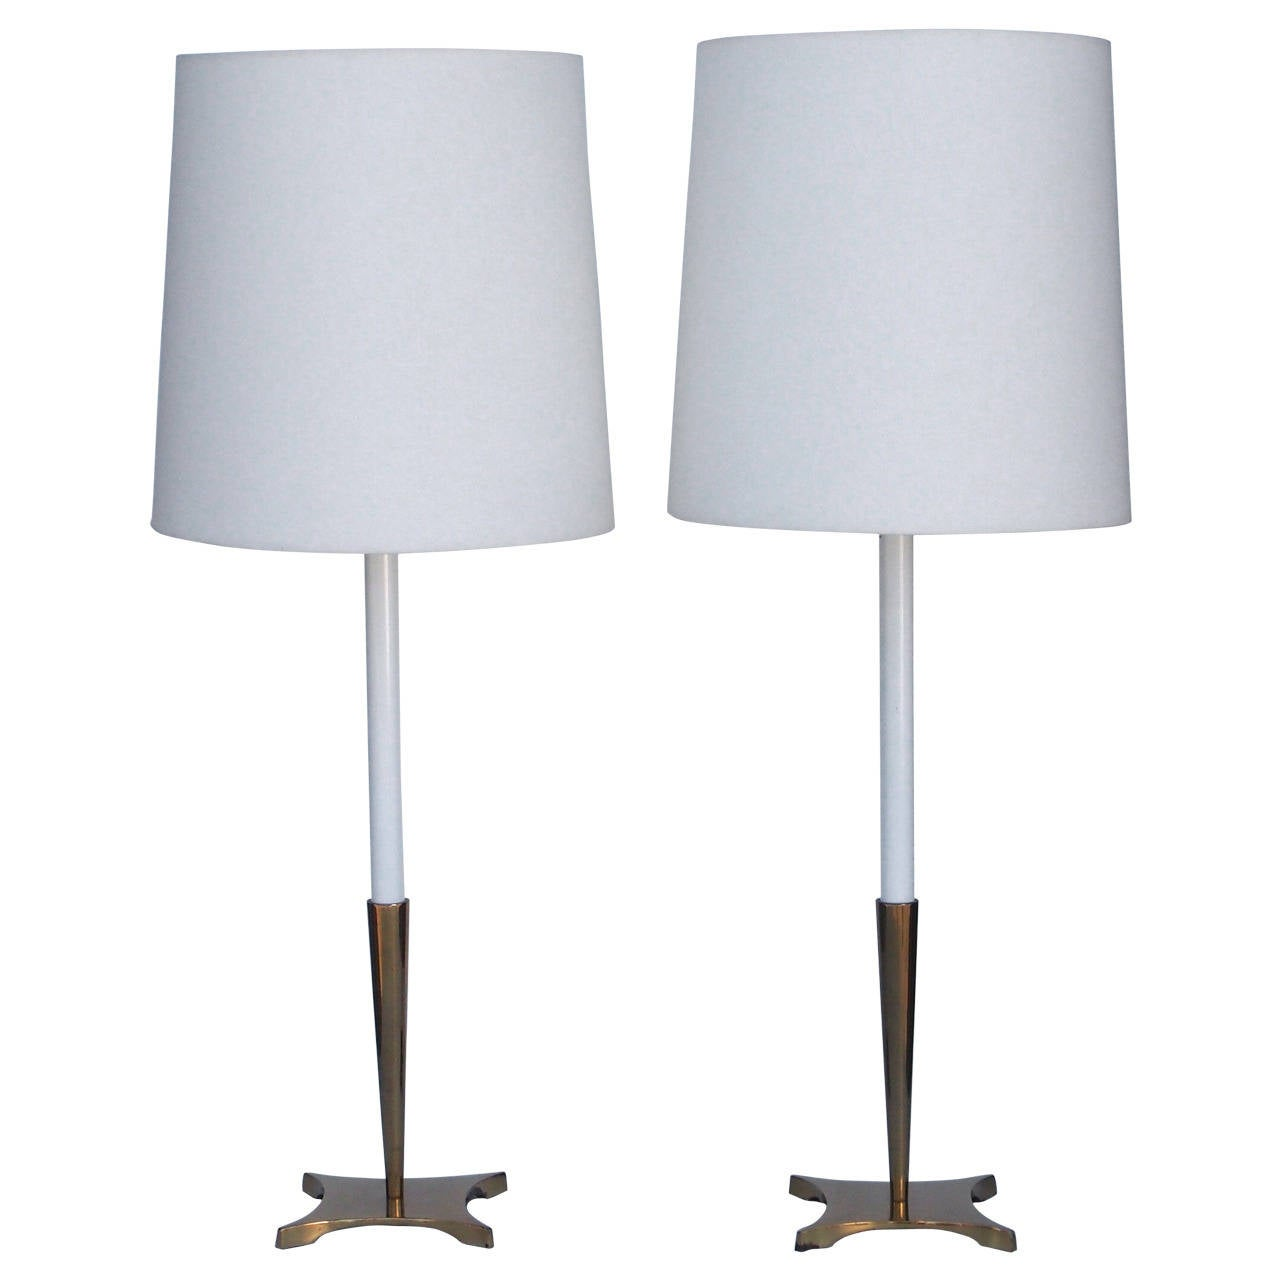 Pair Of Tall Brass Modernist Stiffel Table Lamps At 1stdibs